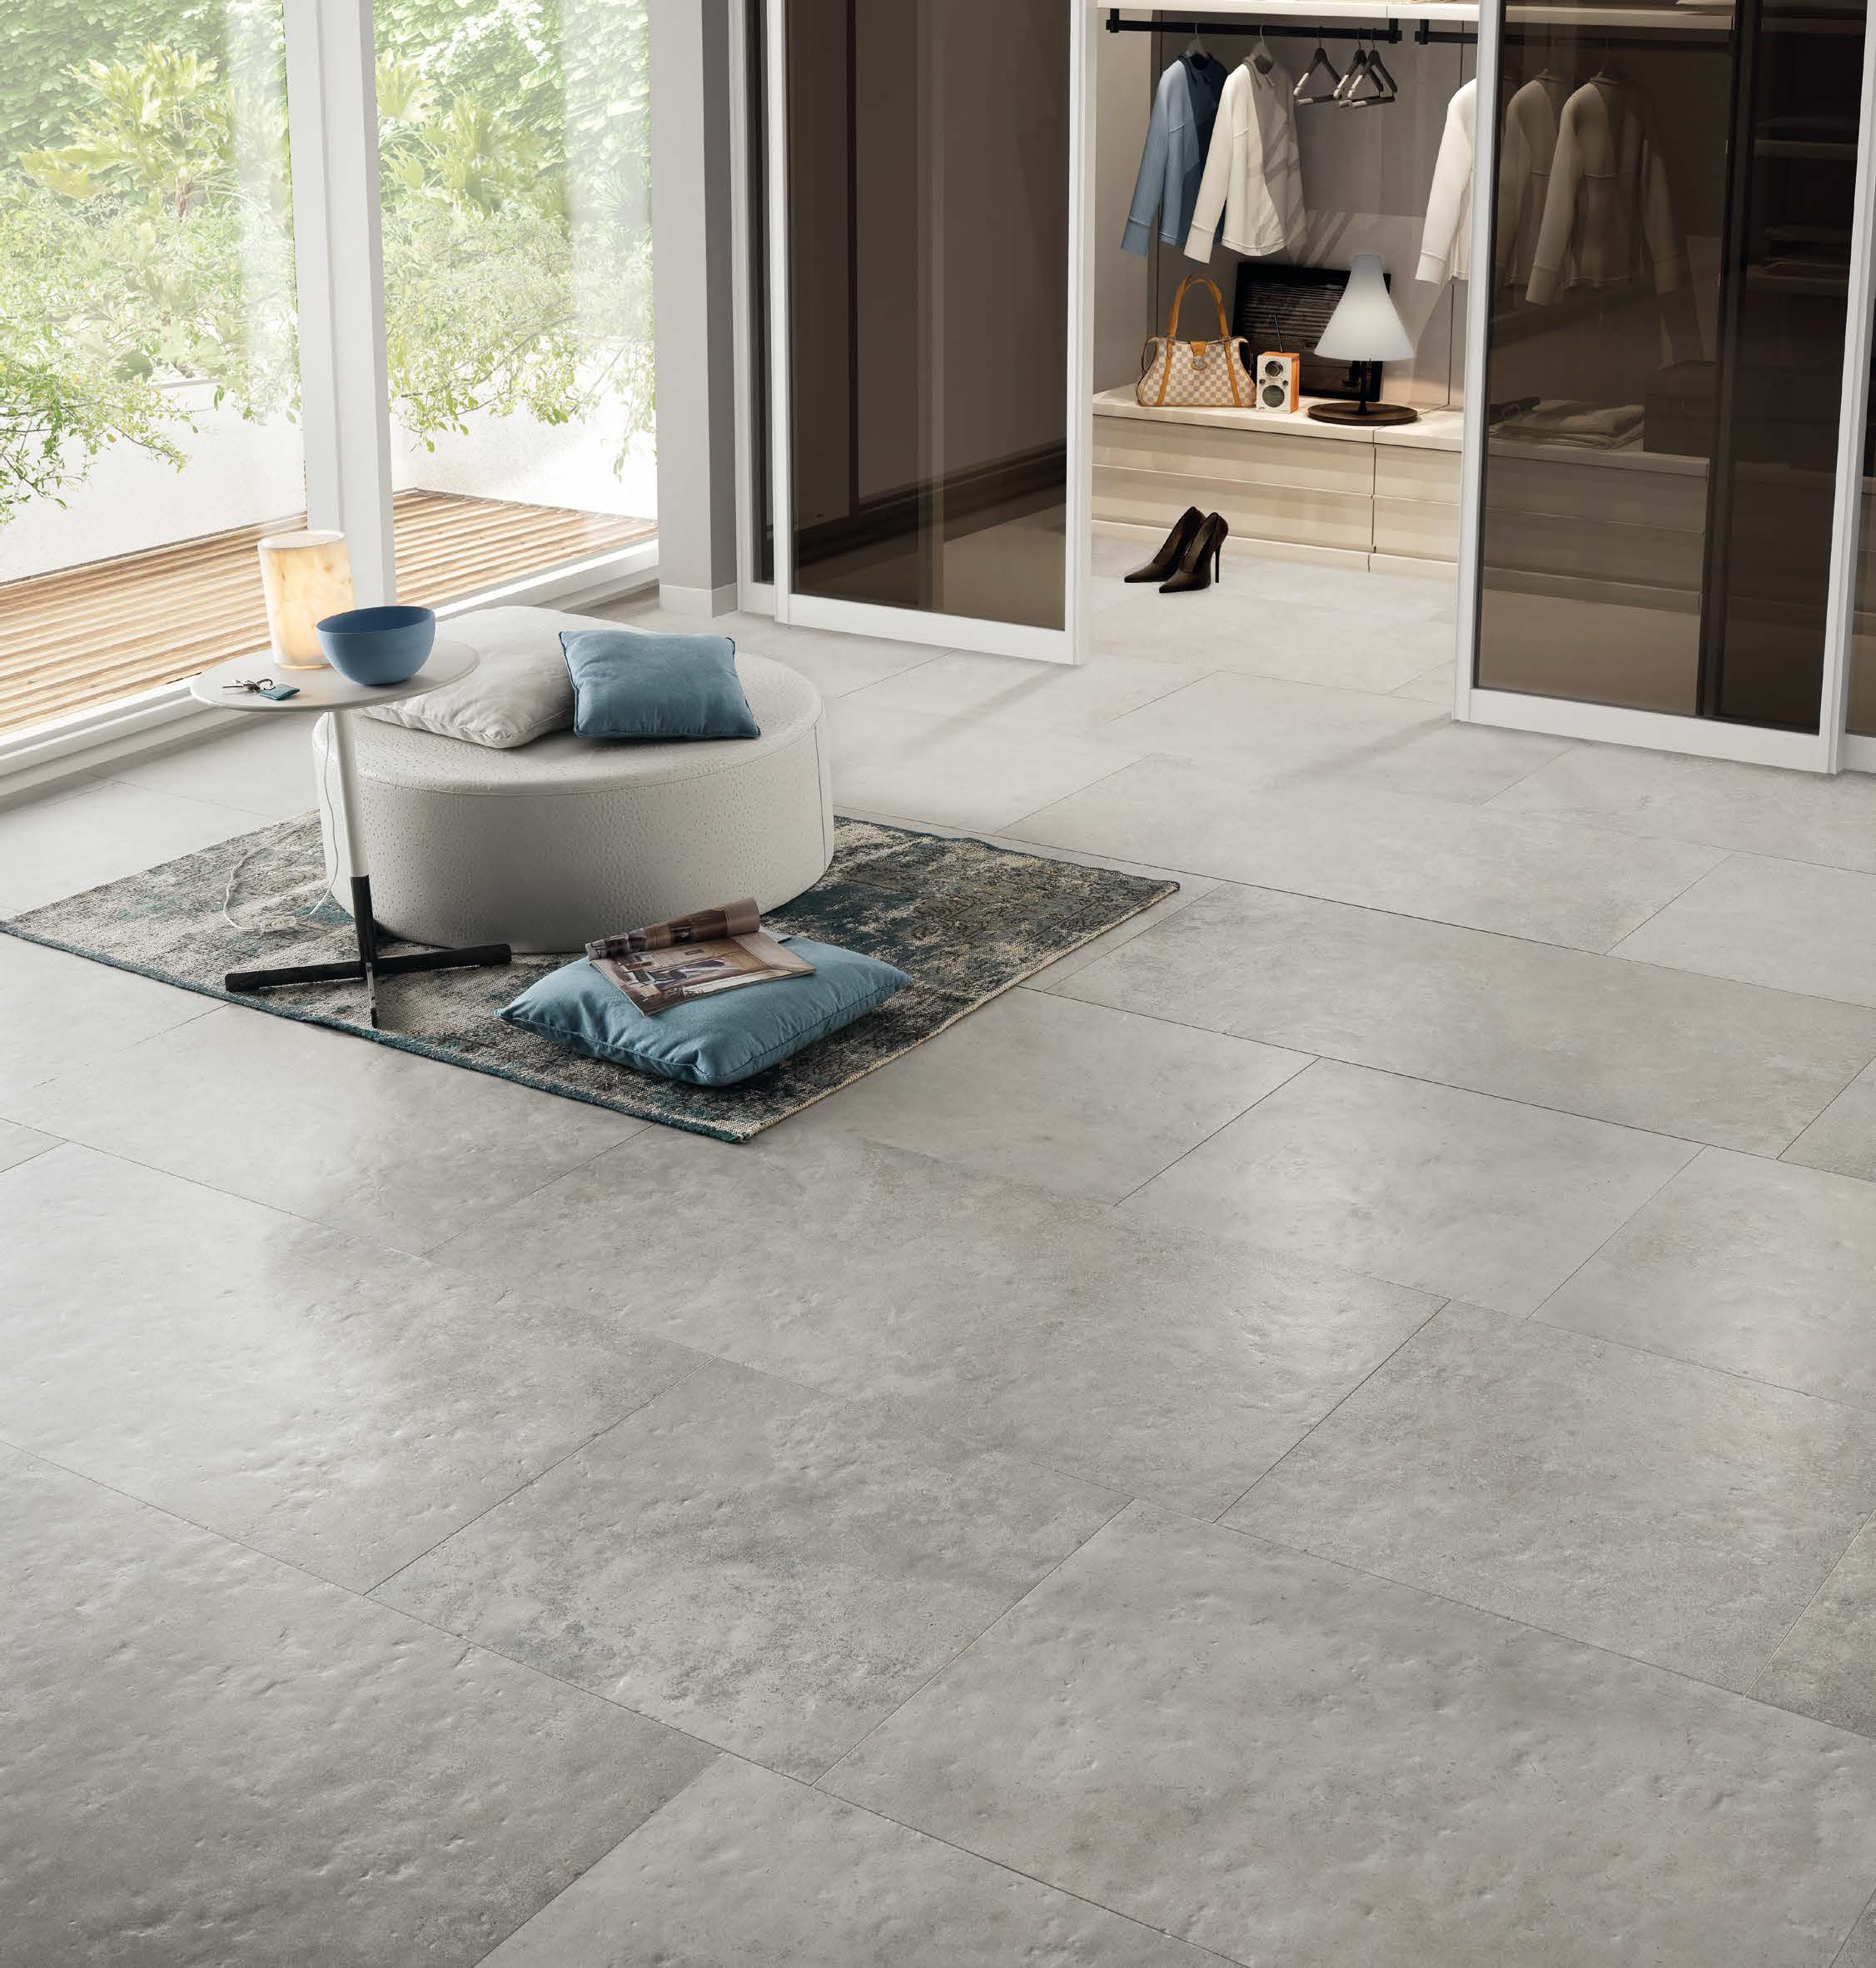 Chambord sichenia for Carrelage 60x60